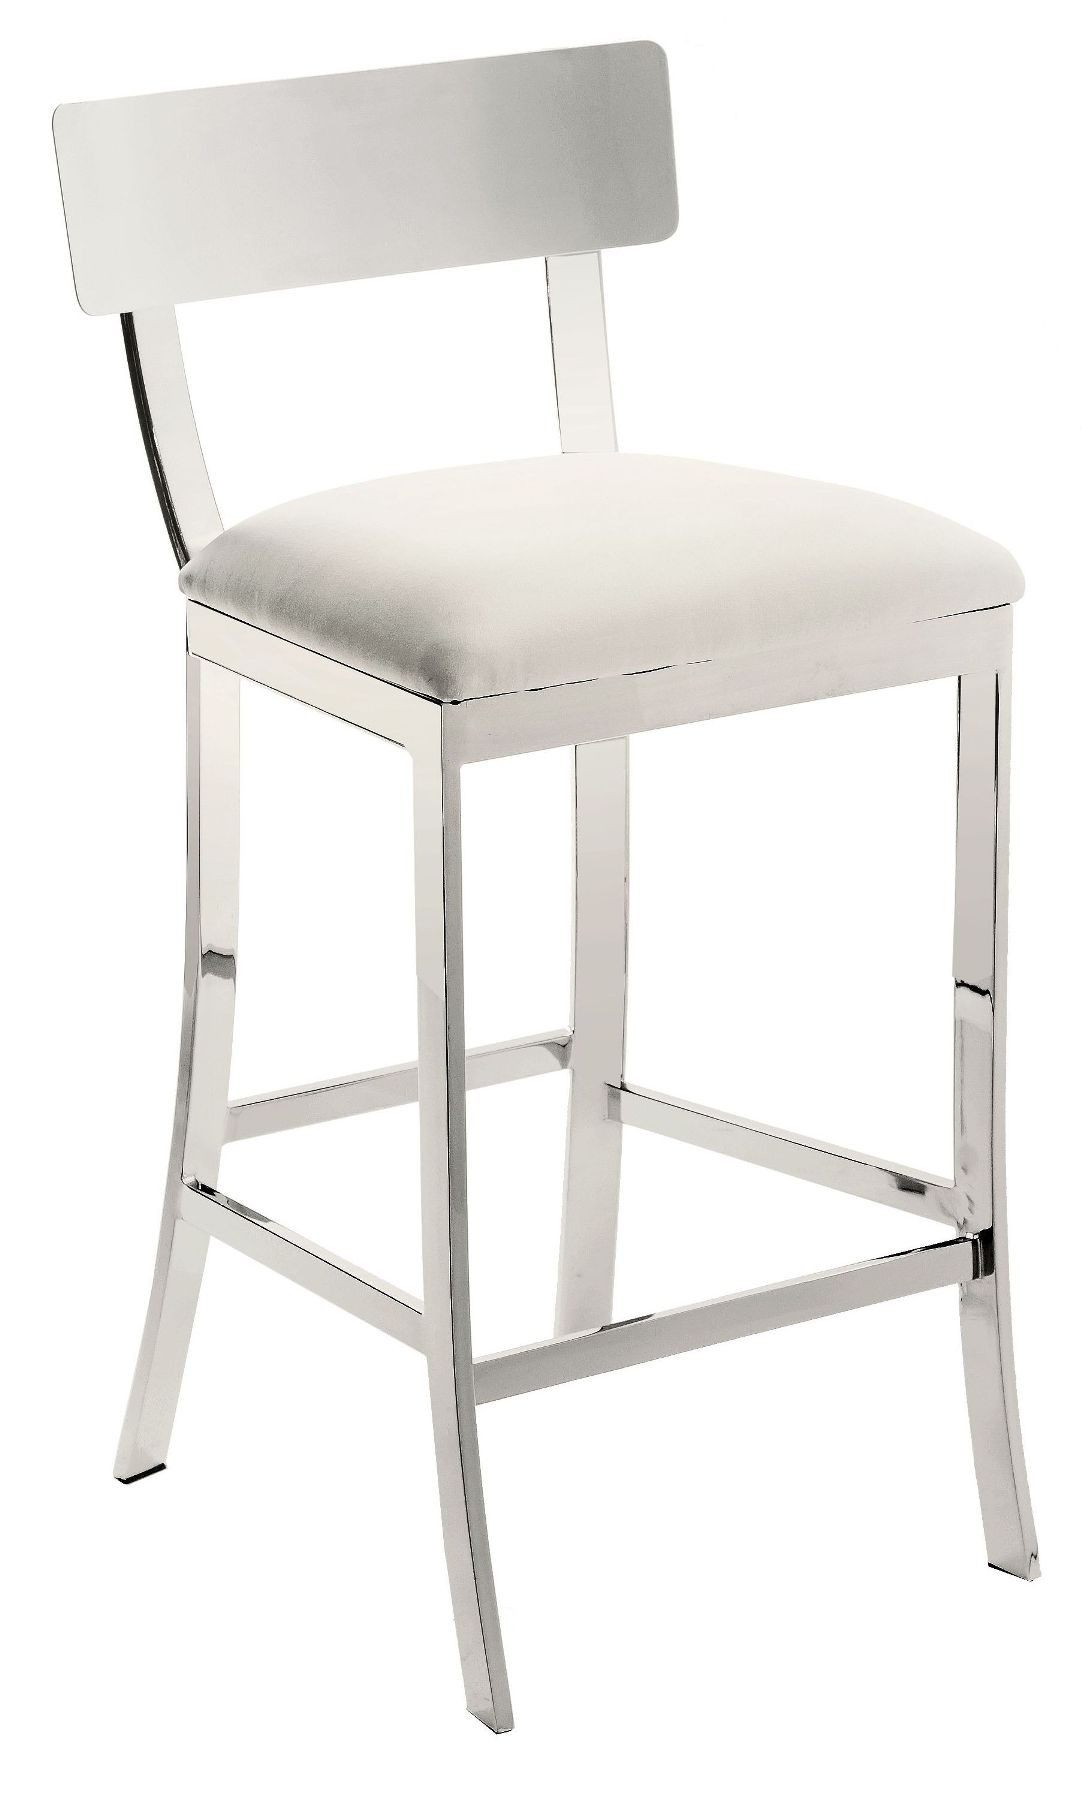 Maiden White Counter Stool From Sunpan 56336 Coleman